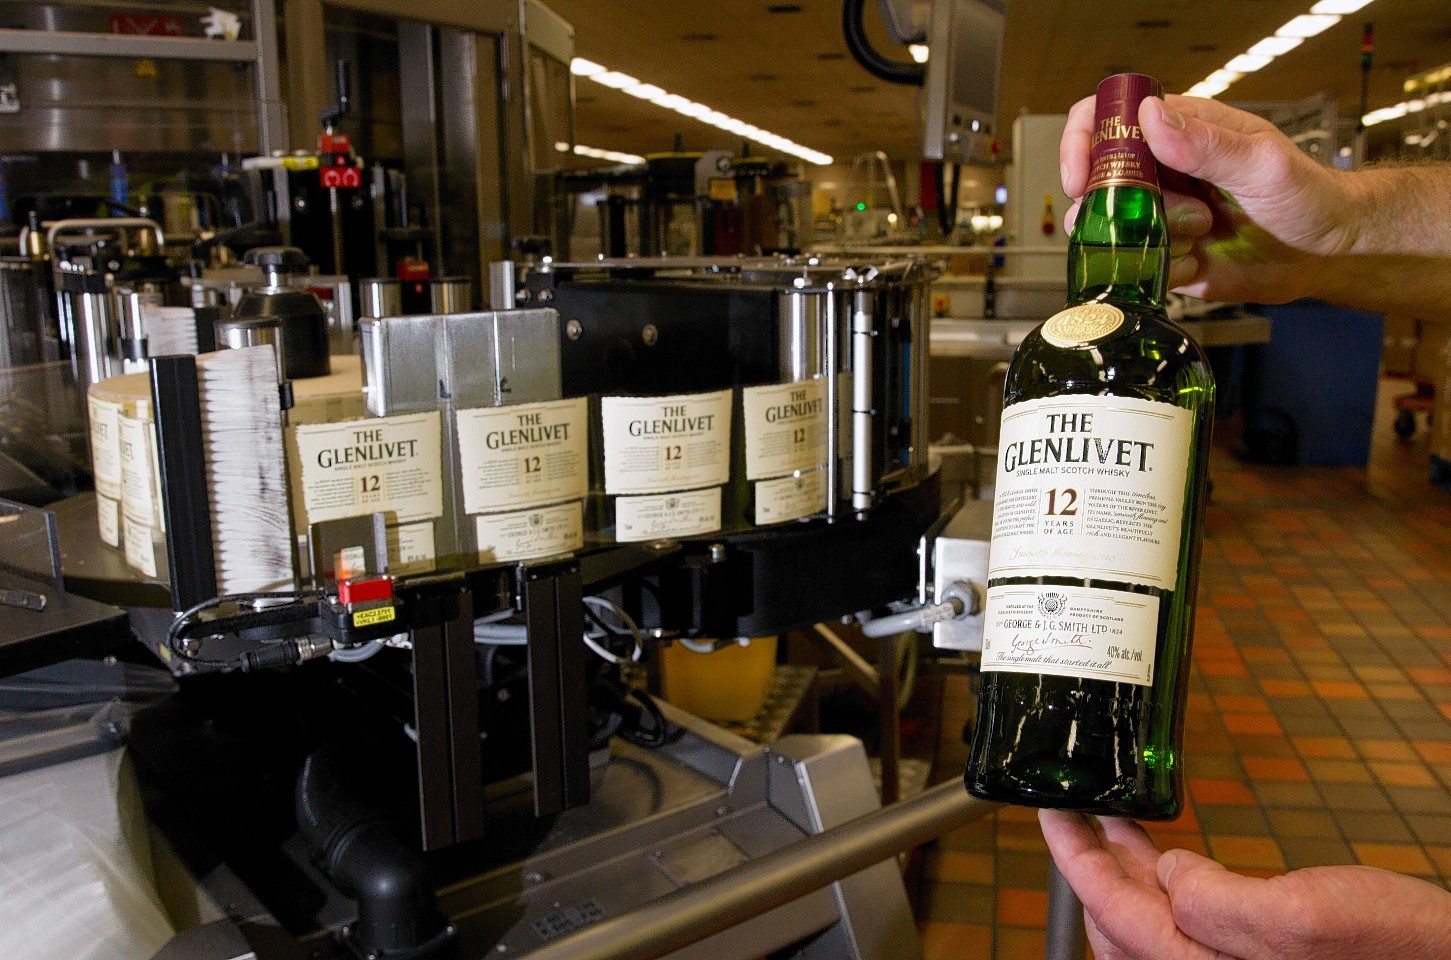 The Glenlivet is produced at a distillery in  Ballindalloch.